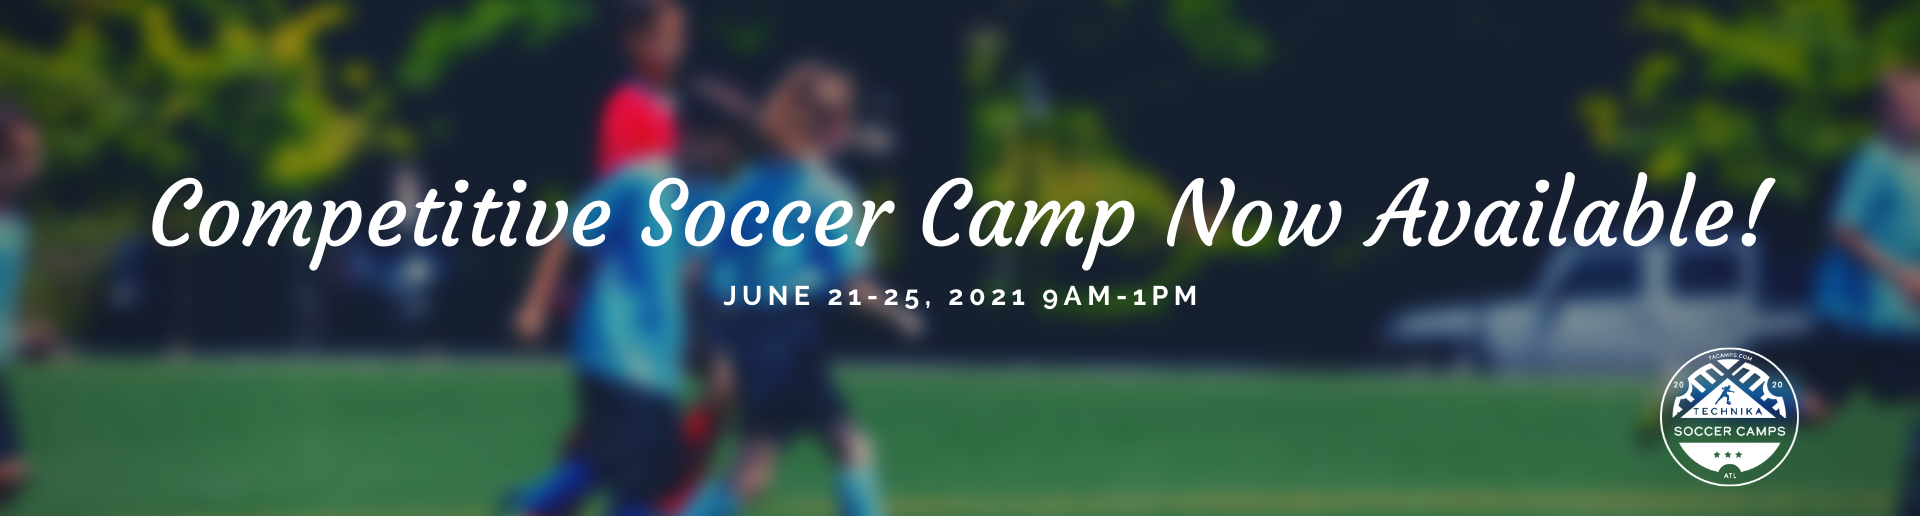 Competitive Soccer Camp Now Available!